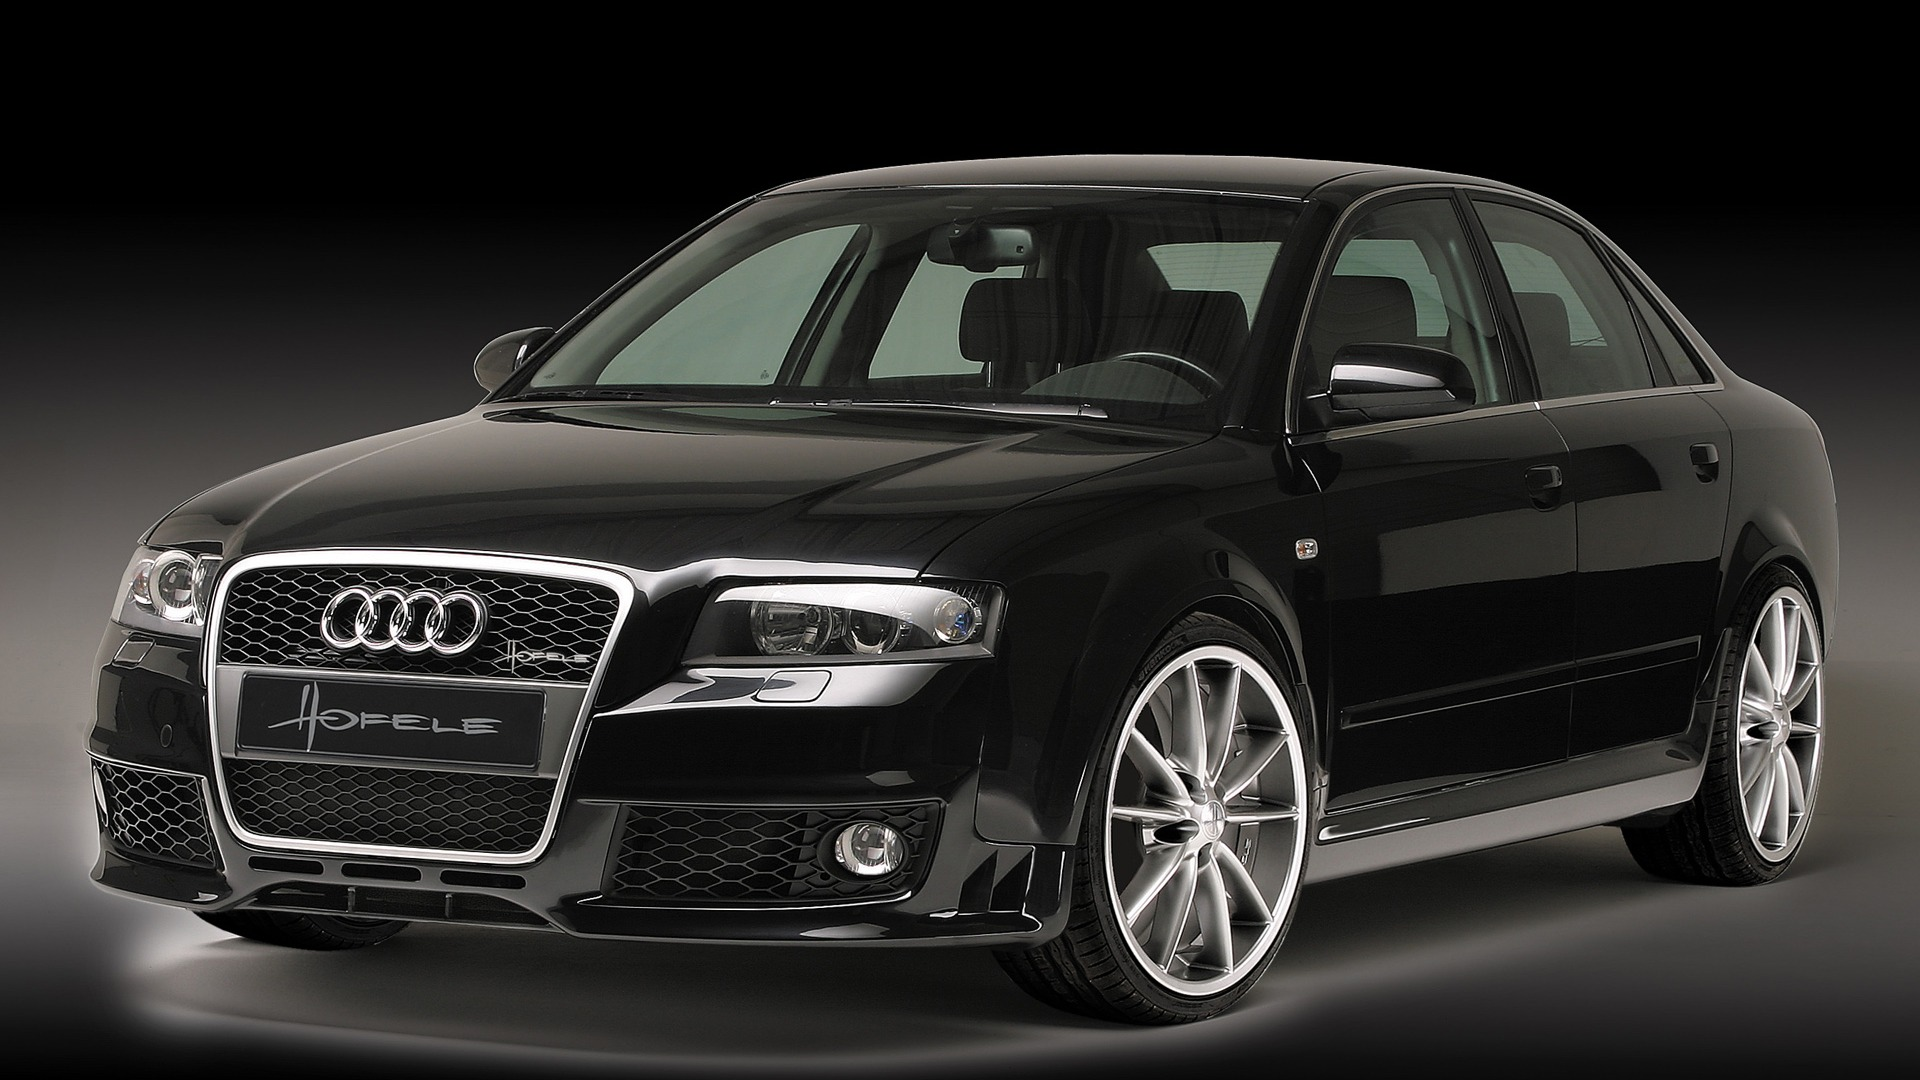 Audi A4 Wallpapers Free Download